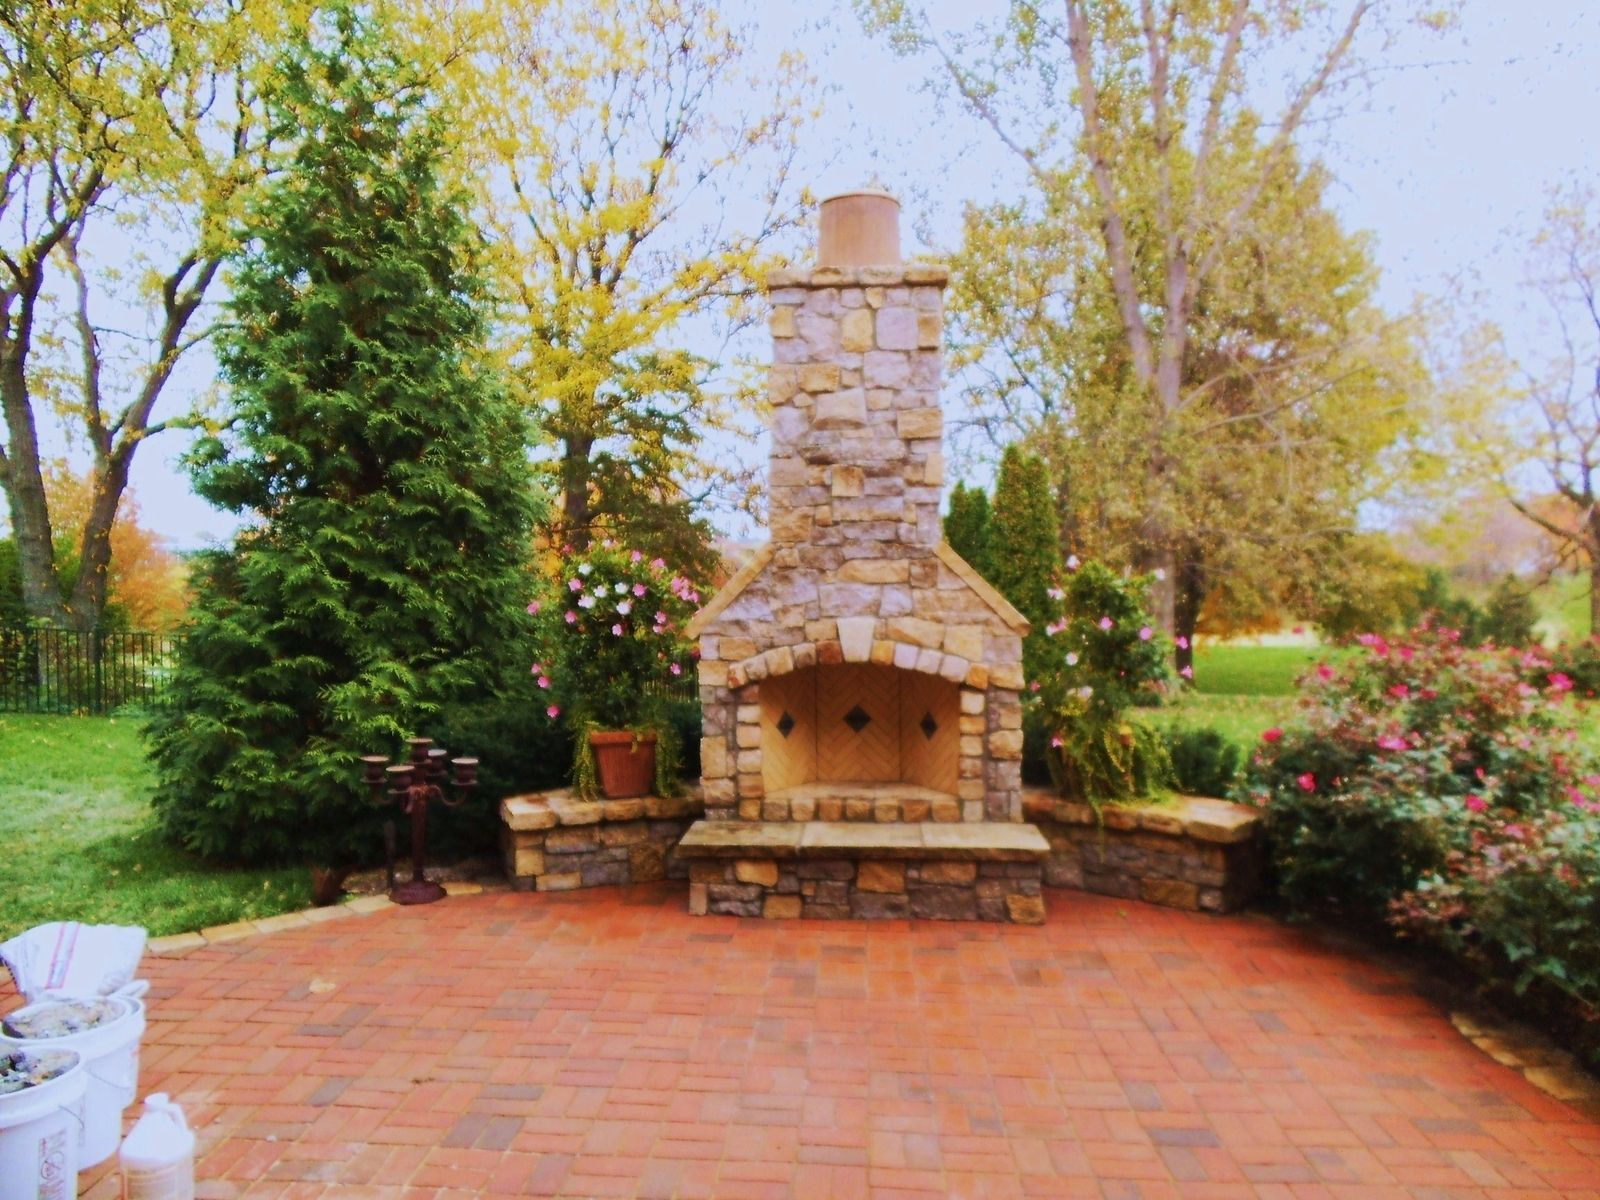 natural stone Rumford fireplace with chimney matched with brown floor for outdoor heat warming ideas